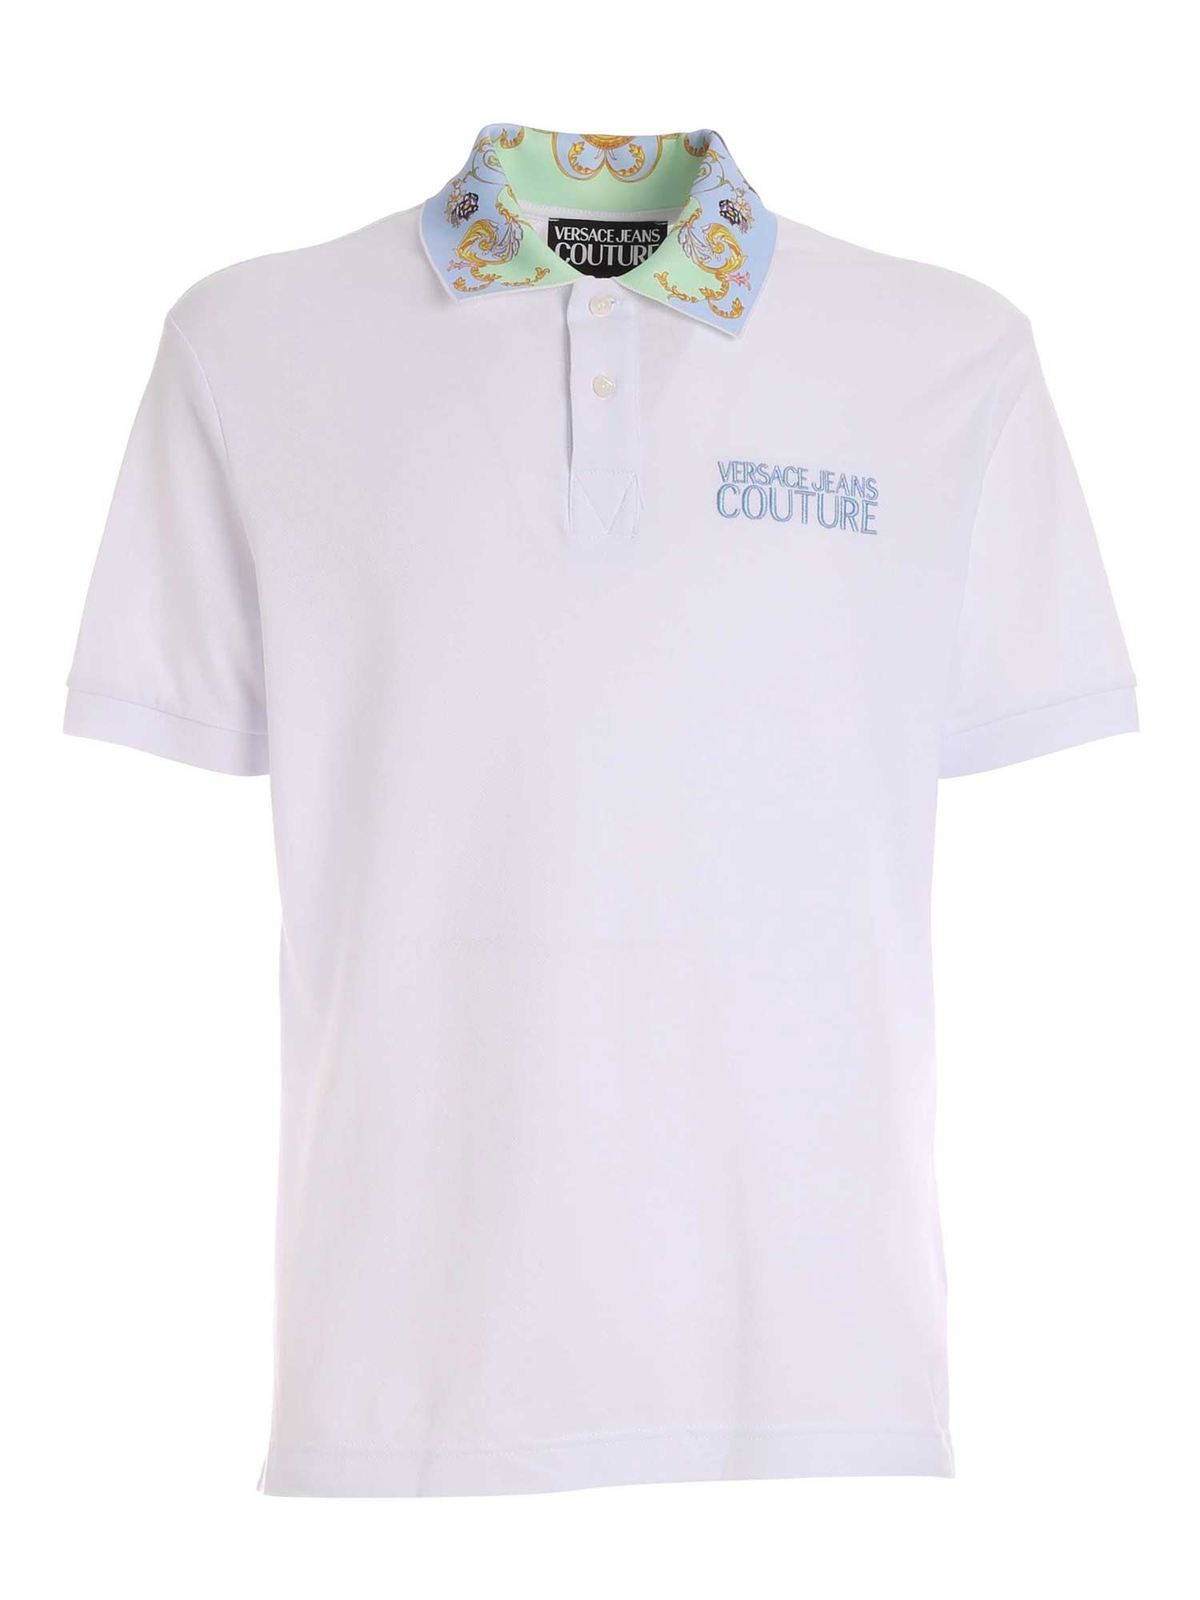 VERSACE JEANS COUTURE LOGO PRINT DETAILS POLO SHIRT IN WHITE